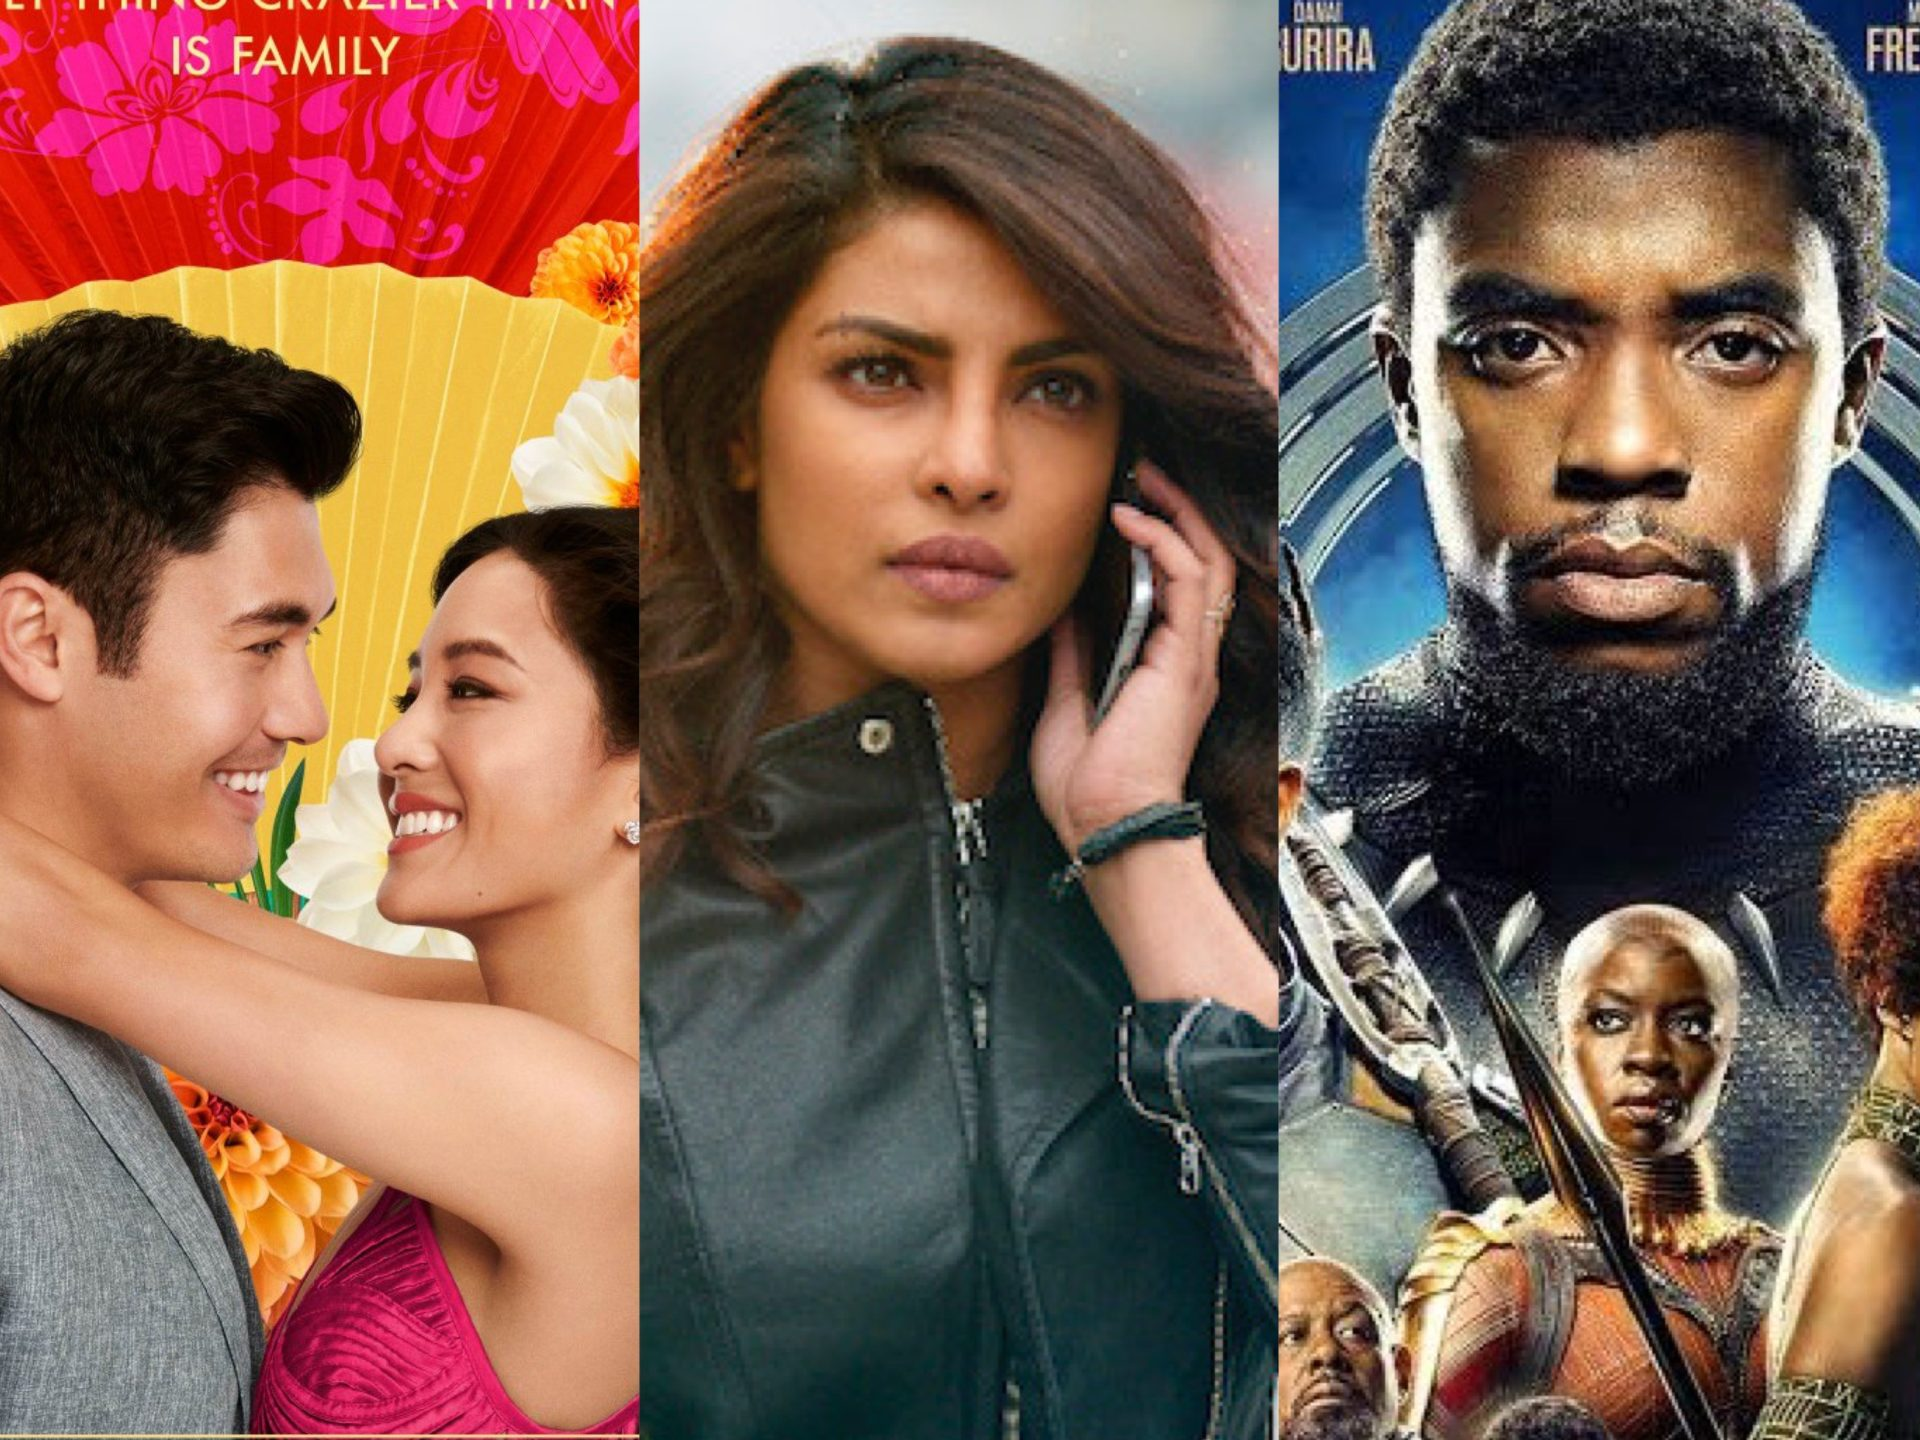 Eradicating white-washing in Hollywood Henry Golding and Constance Wu in Crazy Rich Asians, Priyanka Chopra in Quantico, Chadwick Boseman and Danai Gurira in Black Panther